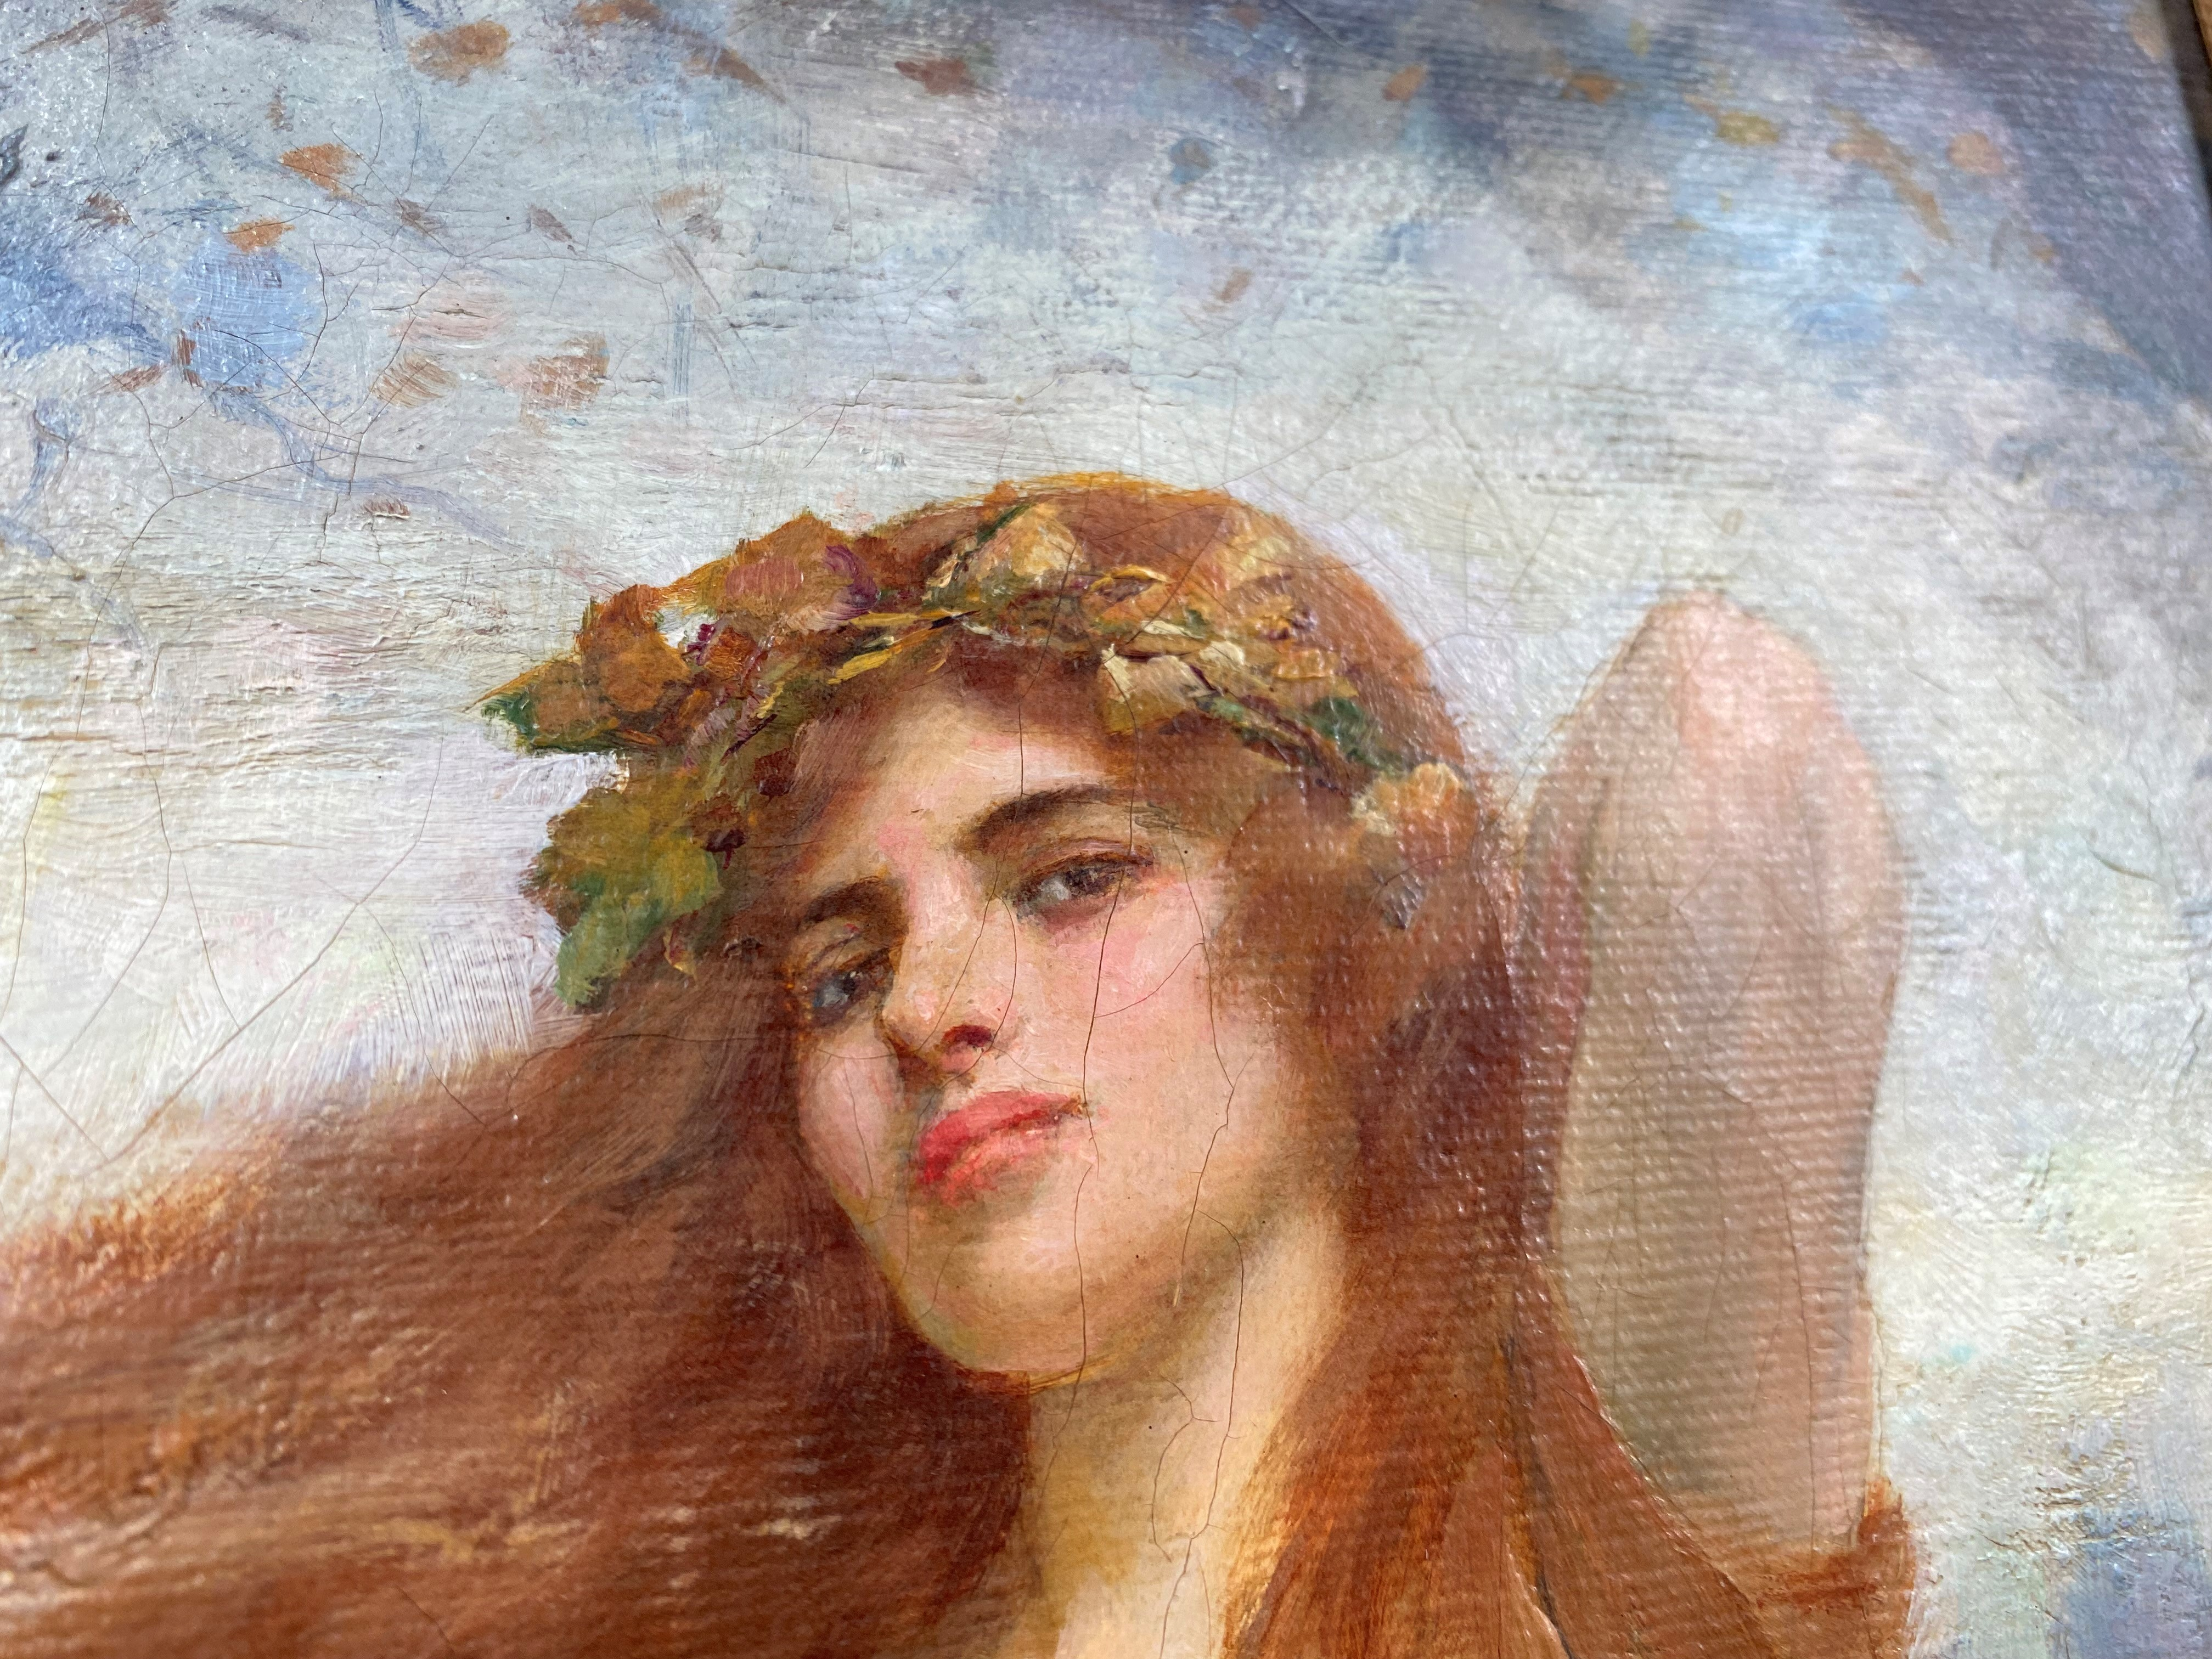 William Breakspeare (British 19th Century): oil on canvas, pre-Raphaelite portrayal of a young woman - Image 7 of 7